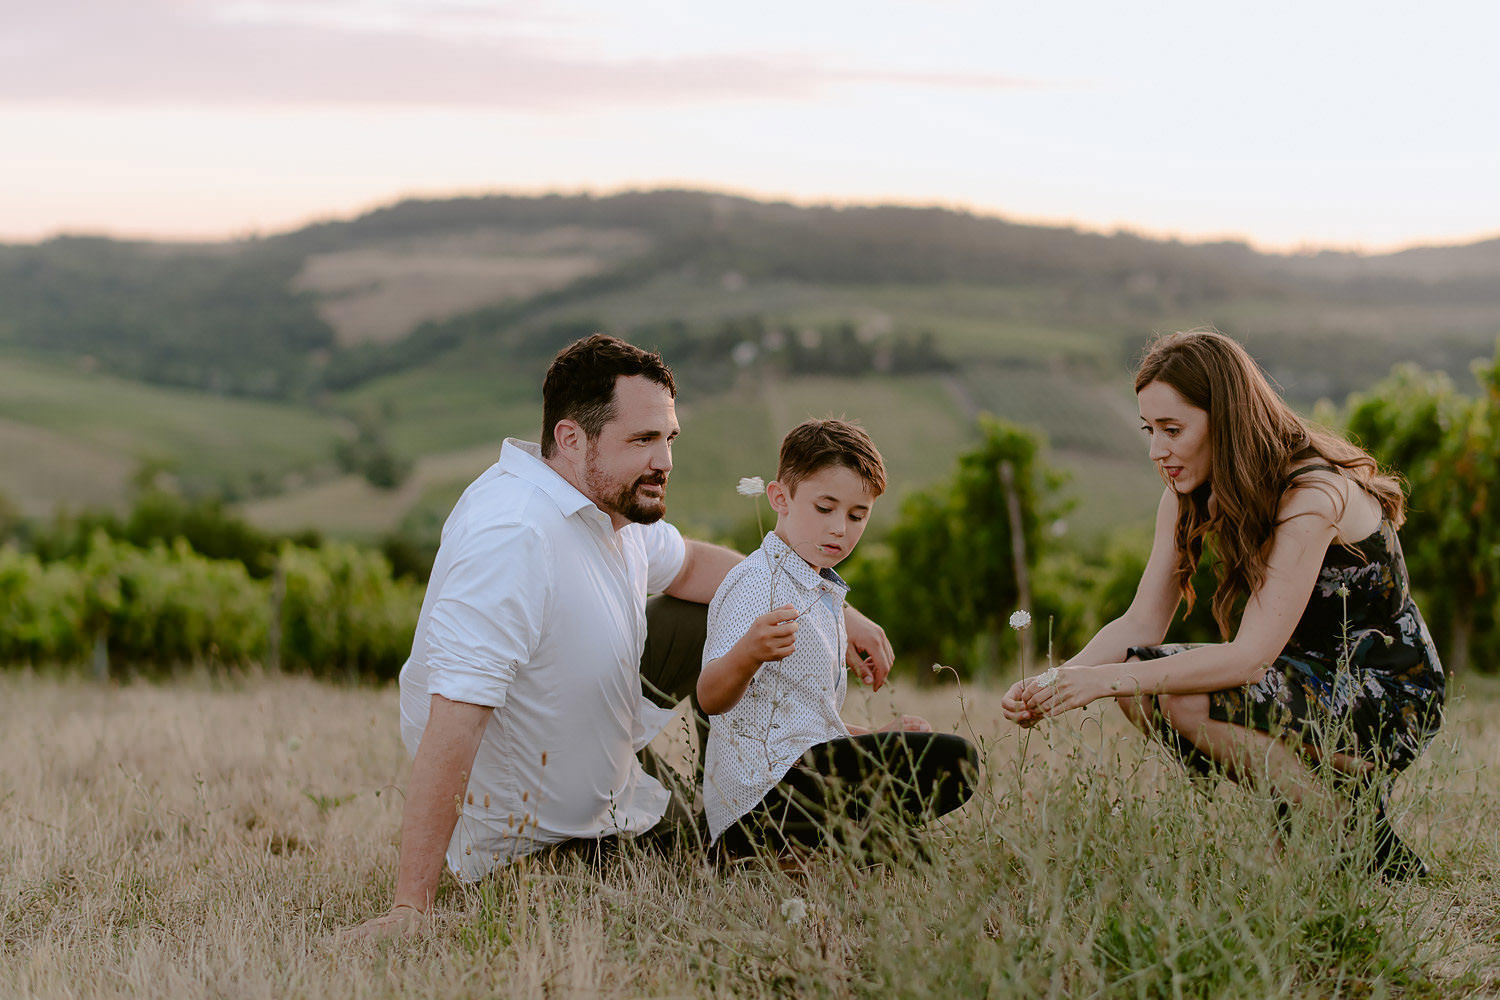 vacation photographer florence tuscany countryside sunset family travel chianti rolling hills vineyards